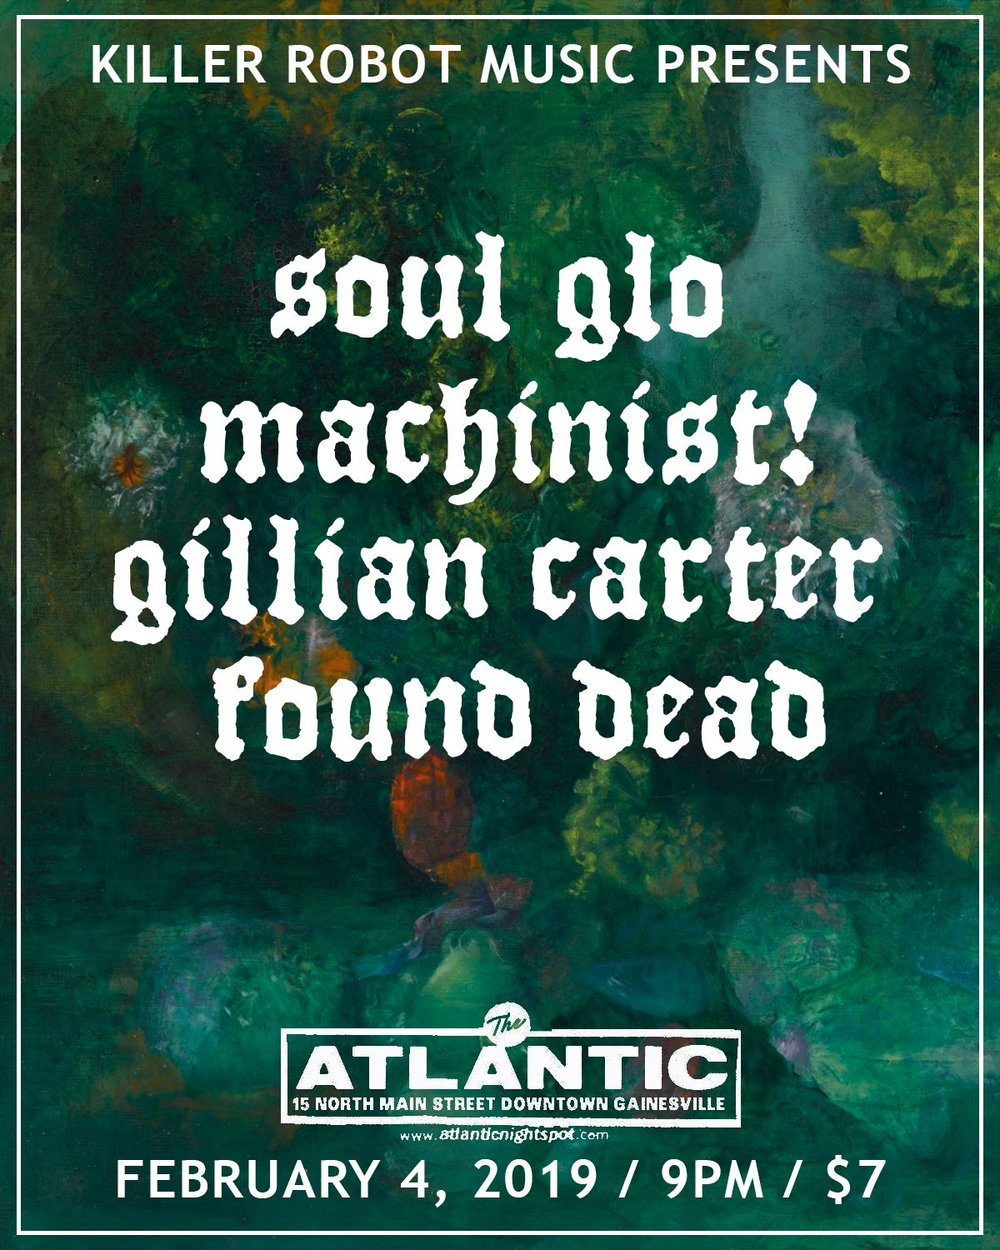 KILLER ROBOT MUSIC PRESENTS:  Soul Glo (Philadelphia, PA) Machinist! (Valdosta, GA) Gillian Carter (Palm Bay, FL) Found Dead  2/4/19 The Atlantic 9PM $7